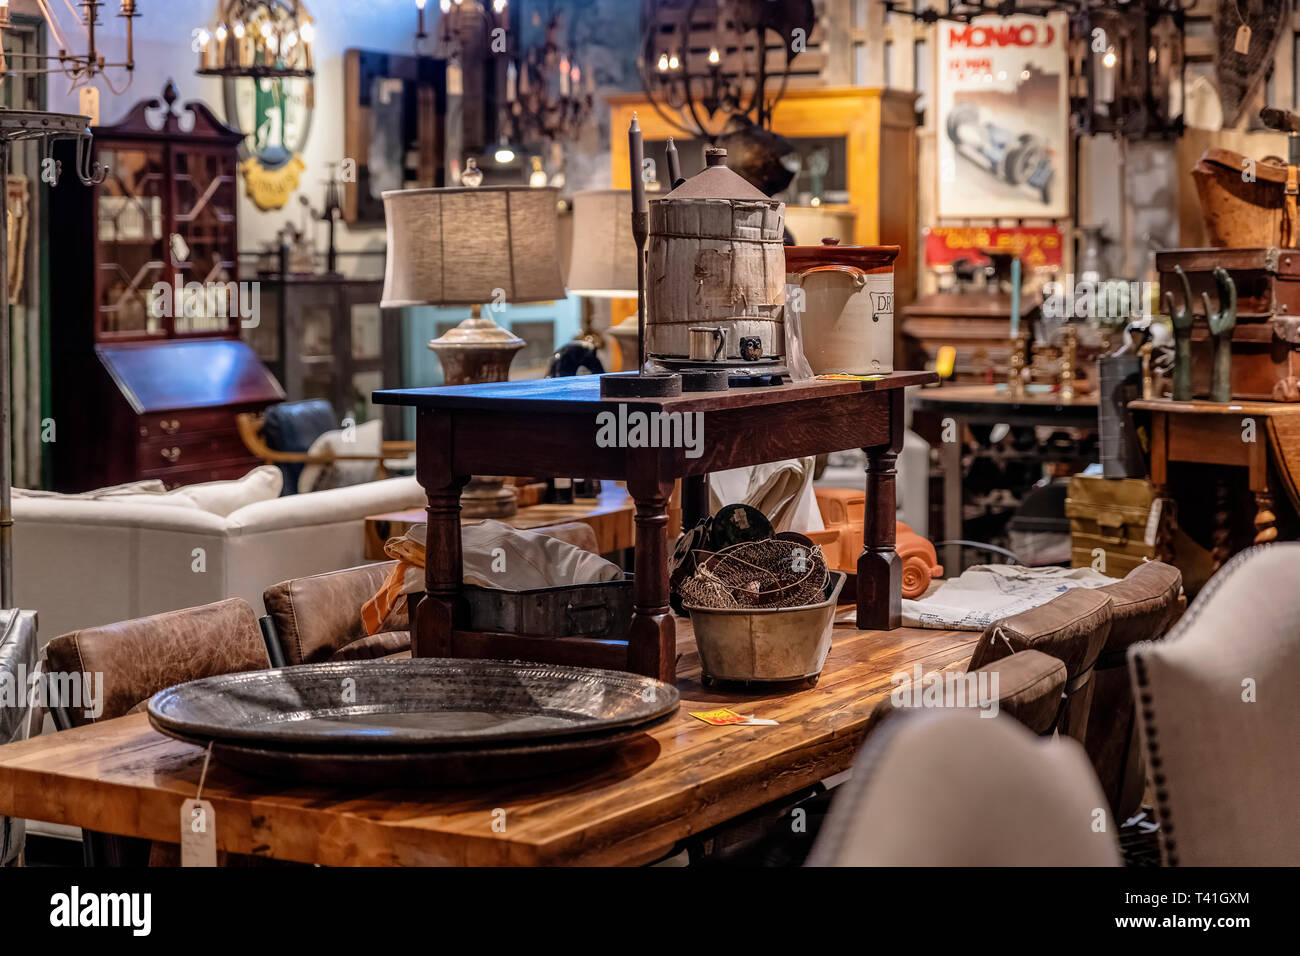 Antique furniture on display in an antique store. - Stock Image